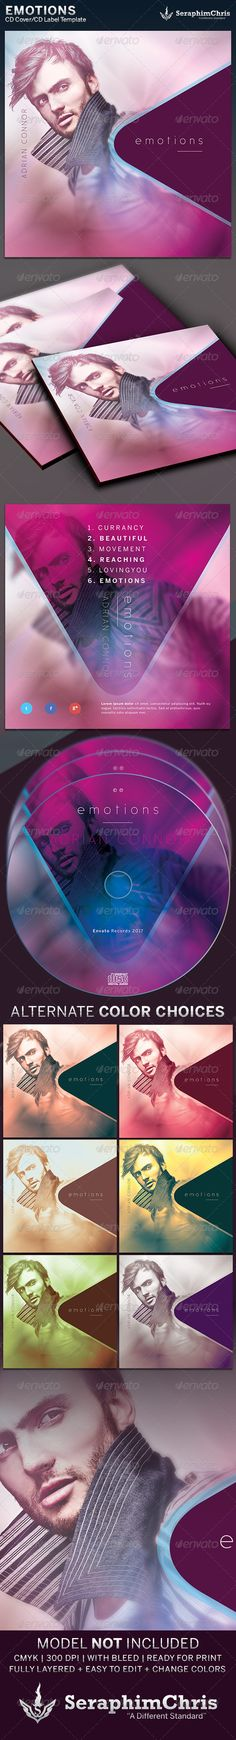 Emotions: CD Cover Artwork Template is customized for any photographer, author or recording artists and Poets that need a modern and unique look. It can be used for media players, iTunes sales, audio books, demos, mixtapes, DJ's, parties, weddings, and lots more. You can change colors and drop your photo in place with ease. Add this to your promotional arsenal for a maximum effect with your contemporary audience.